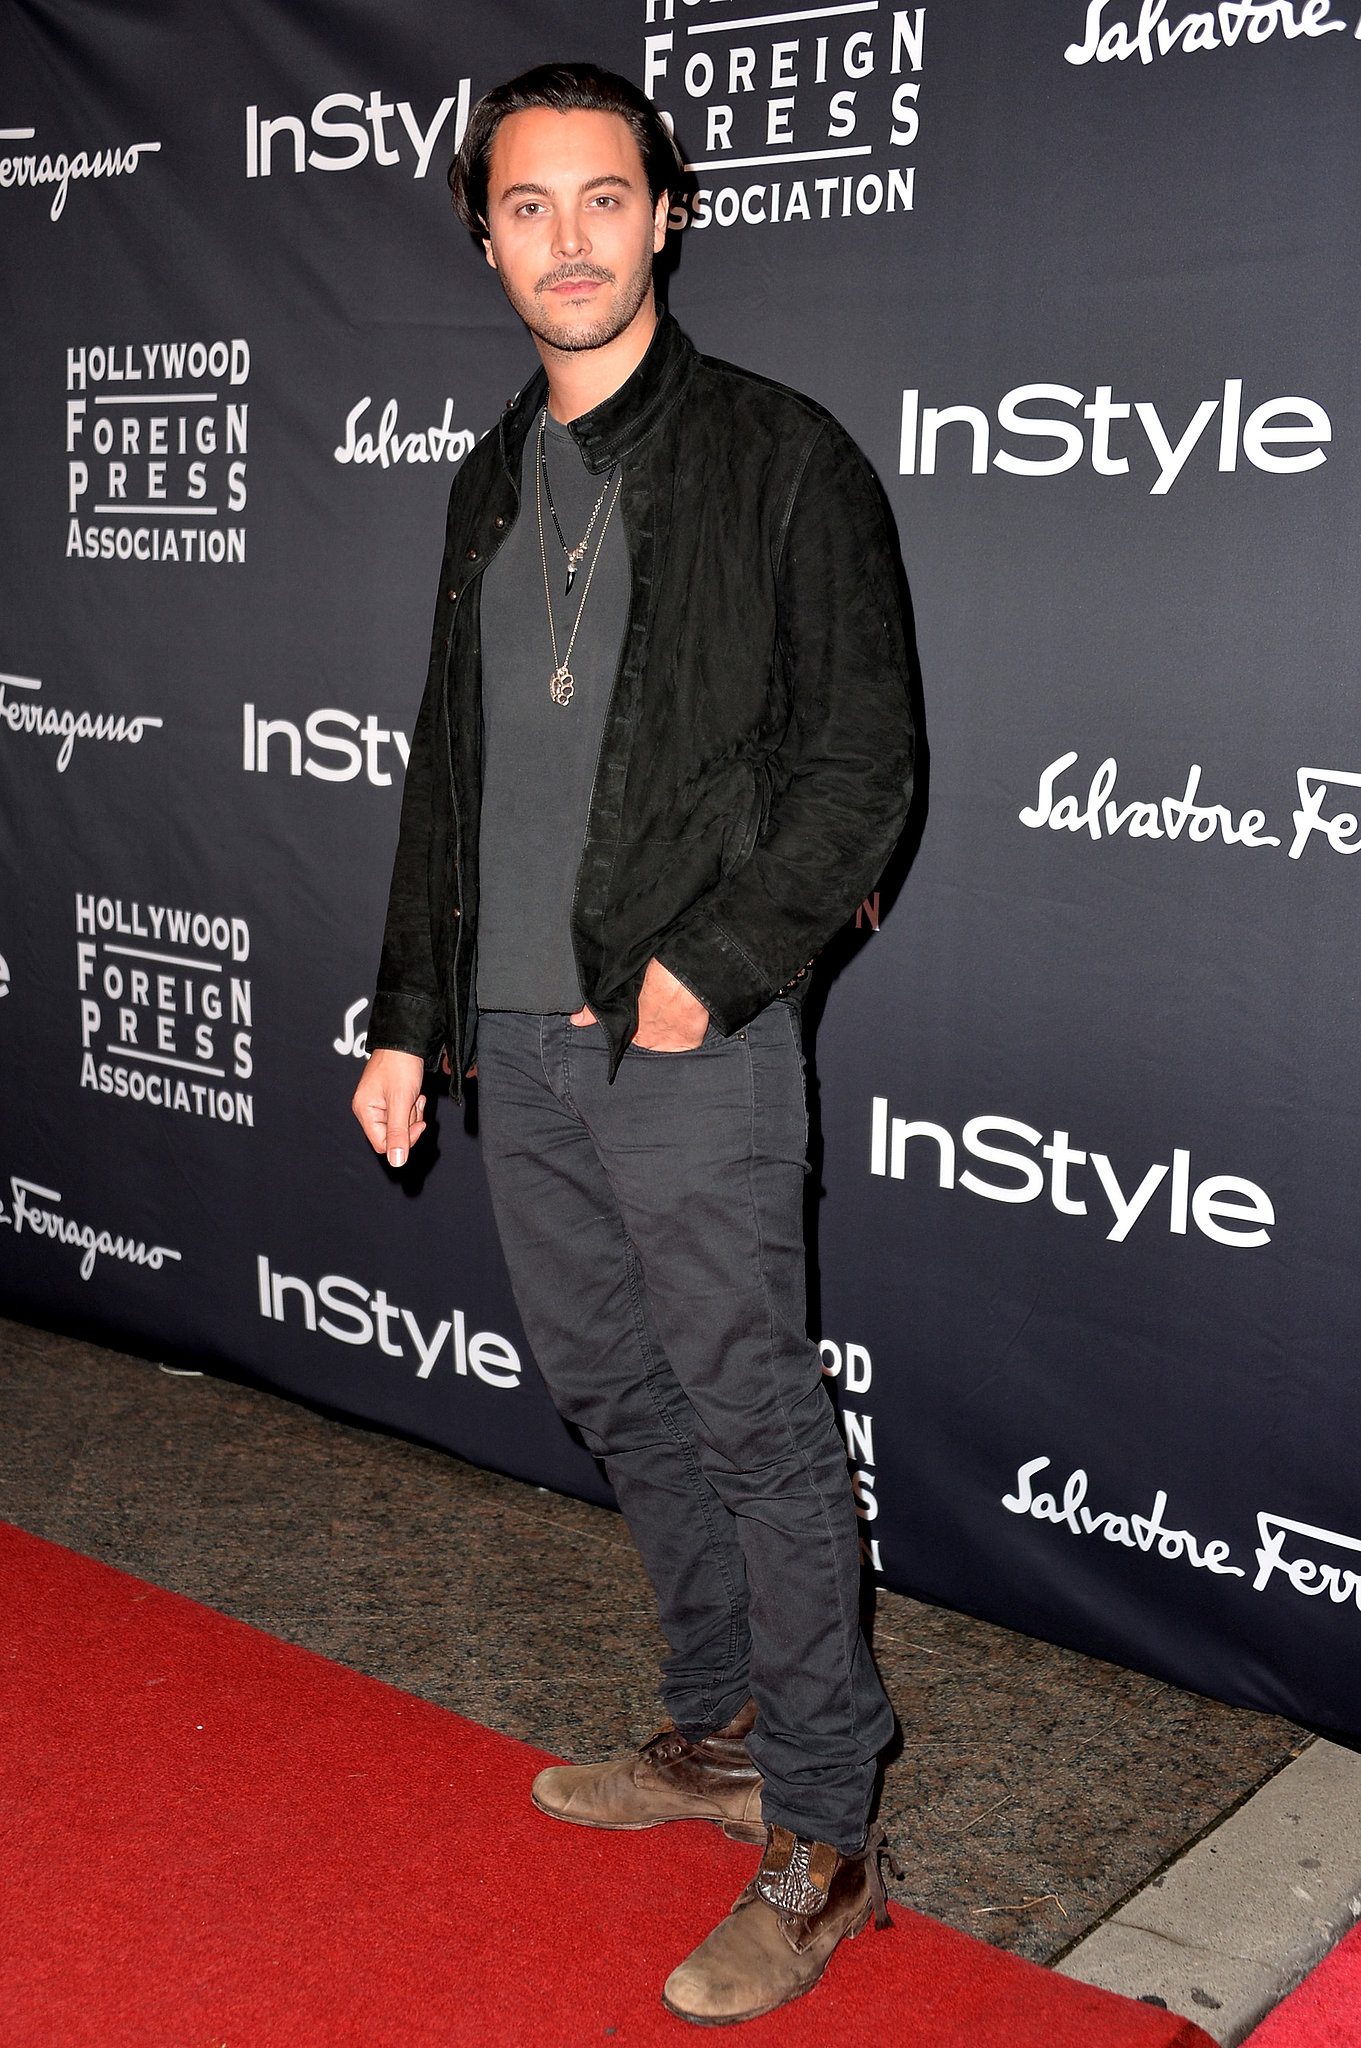 Jack Huston attended the HFPA/InStyle party.